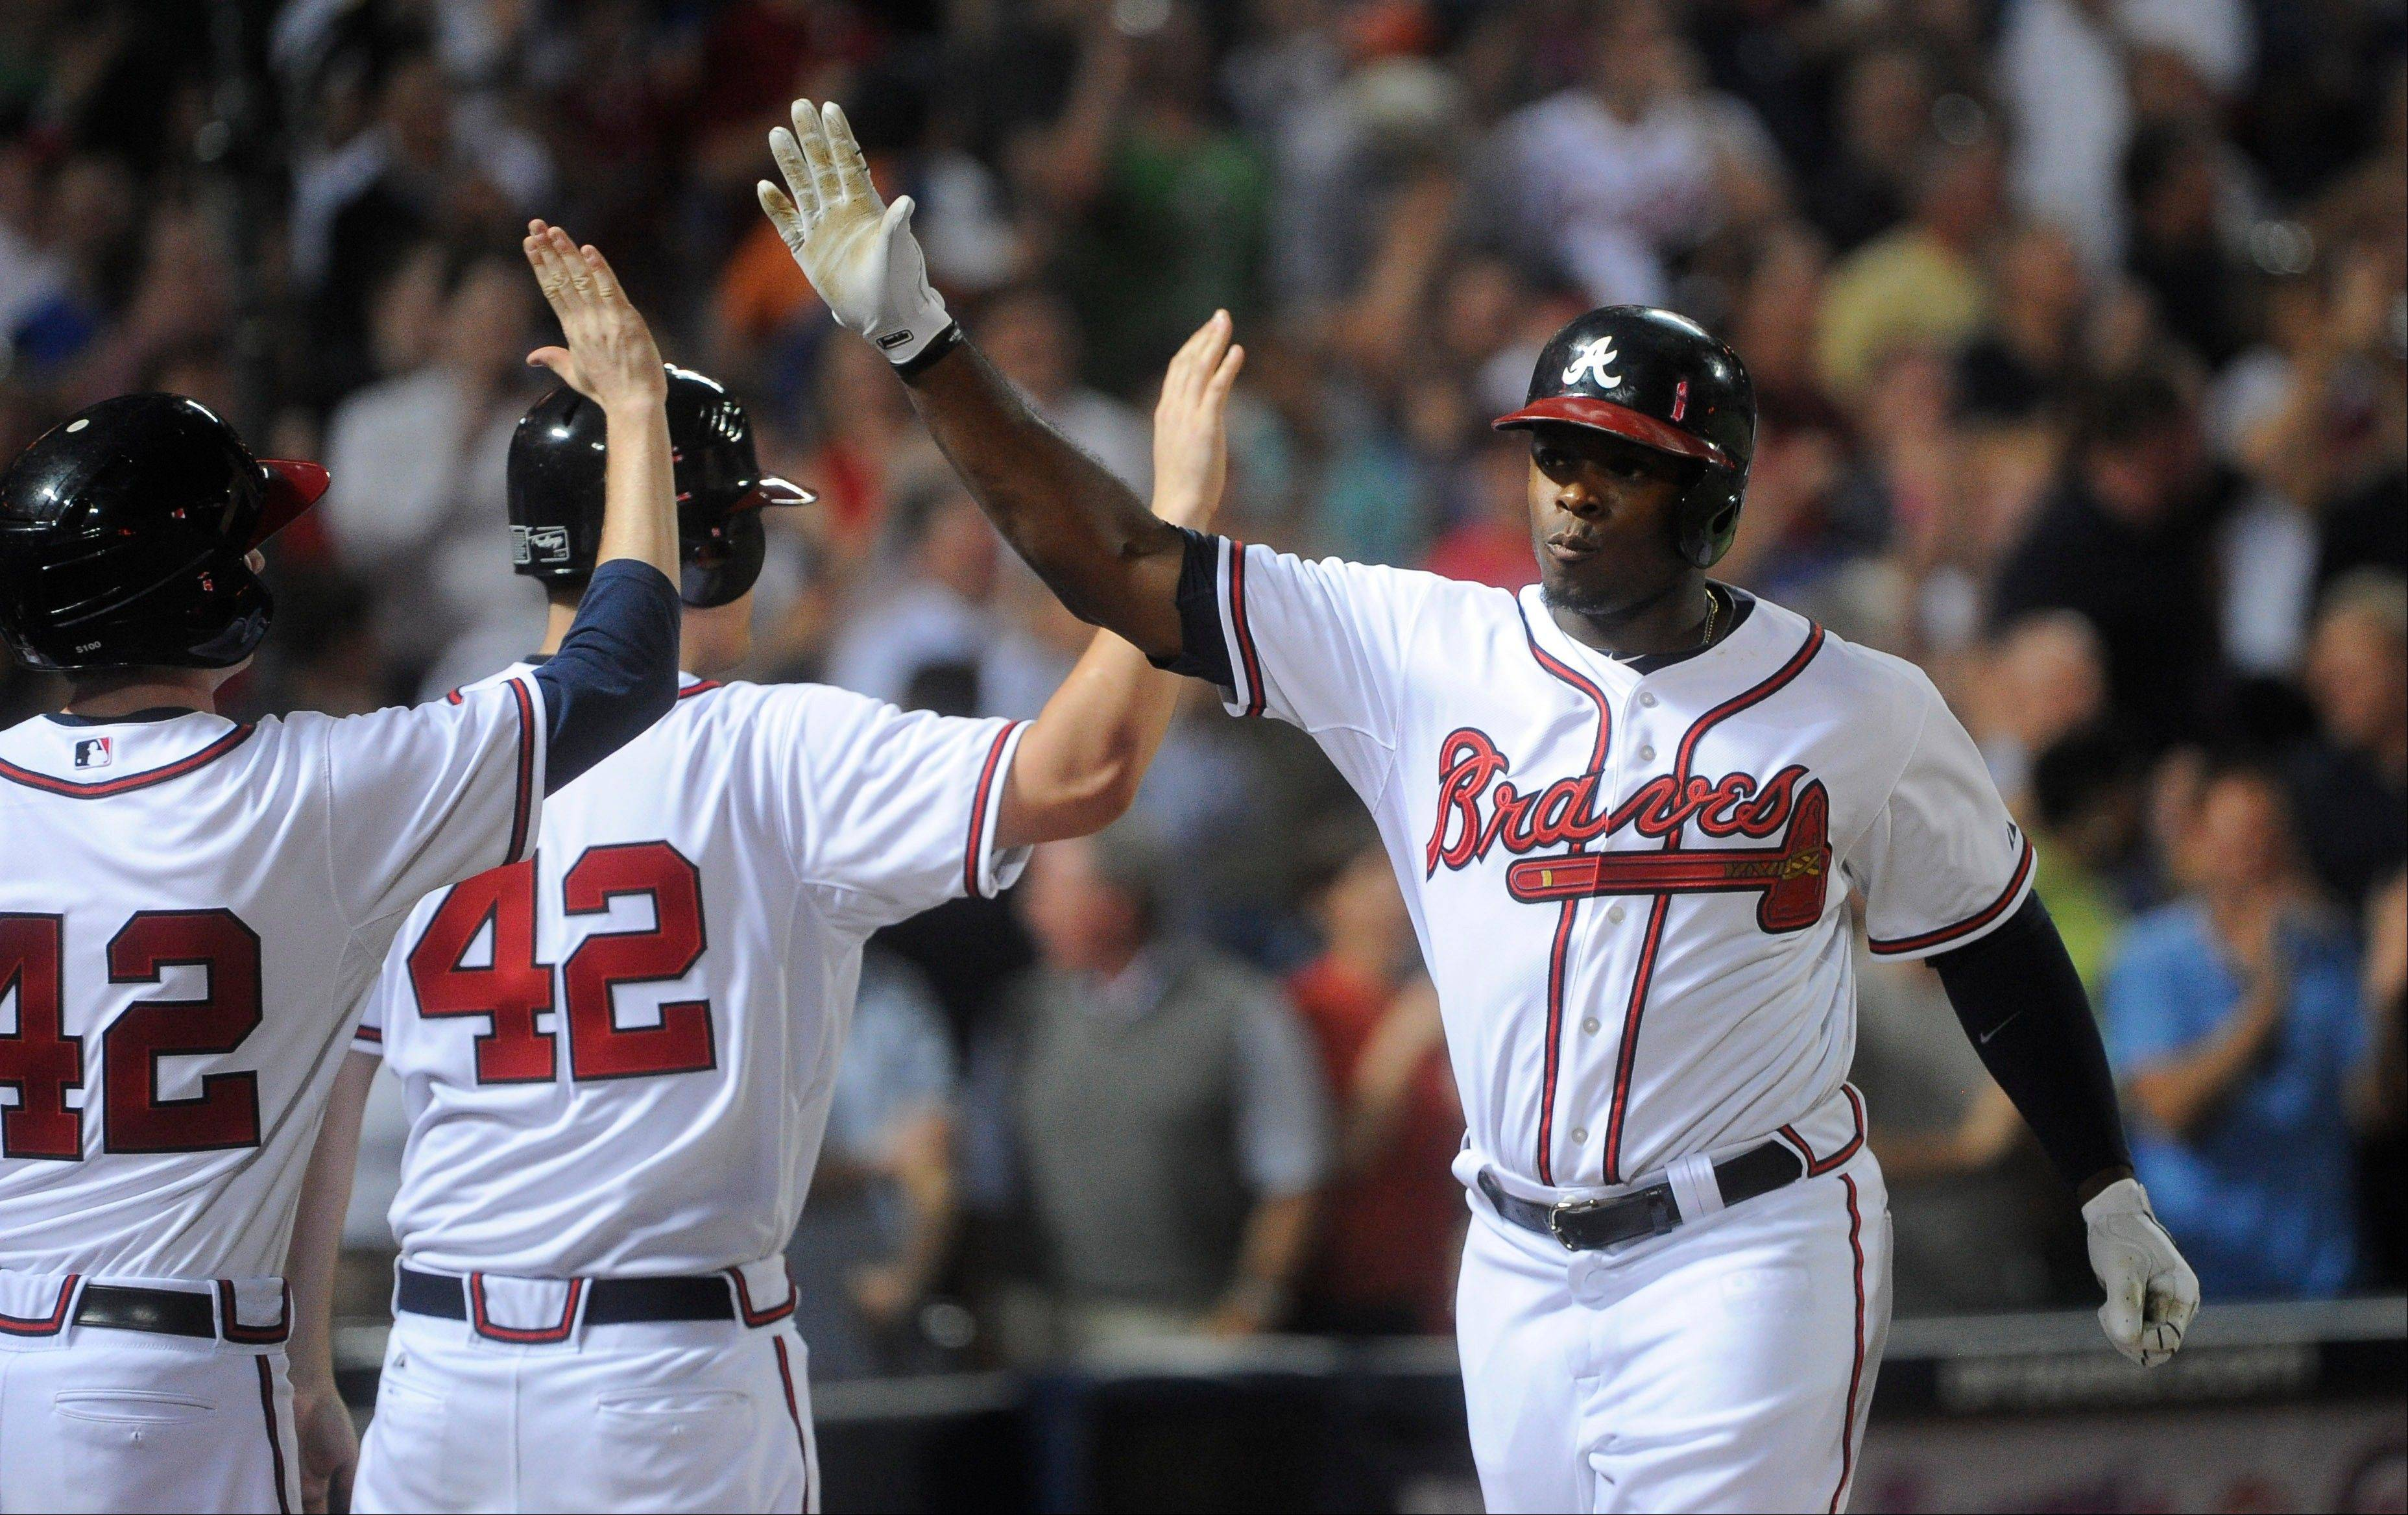 Atlanta Braves� Justin Upton, right, is congratulated as he comes back to the dugout after a home run against the Kansas City Royals during the eighth inning of a baseball game, Tuesday, April 16, 2013, in Atlanta. Atlanta won 6-3. (AP Photo/John Amis)